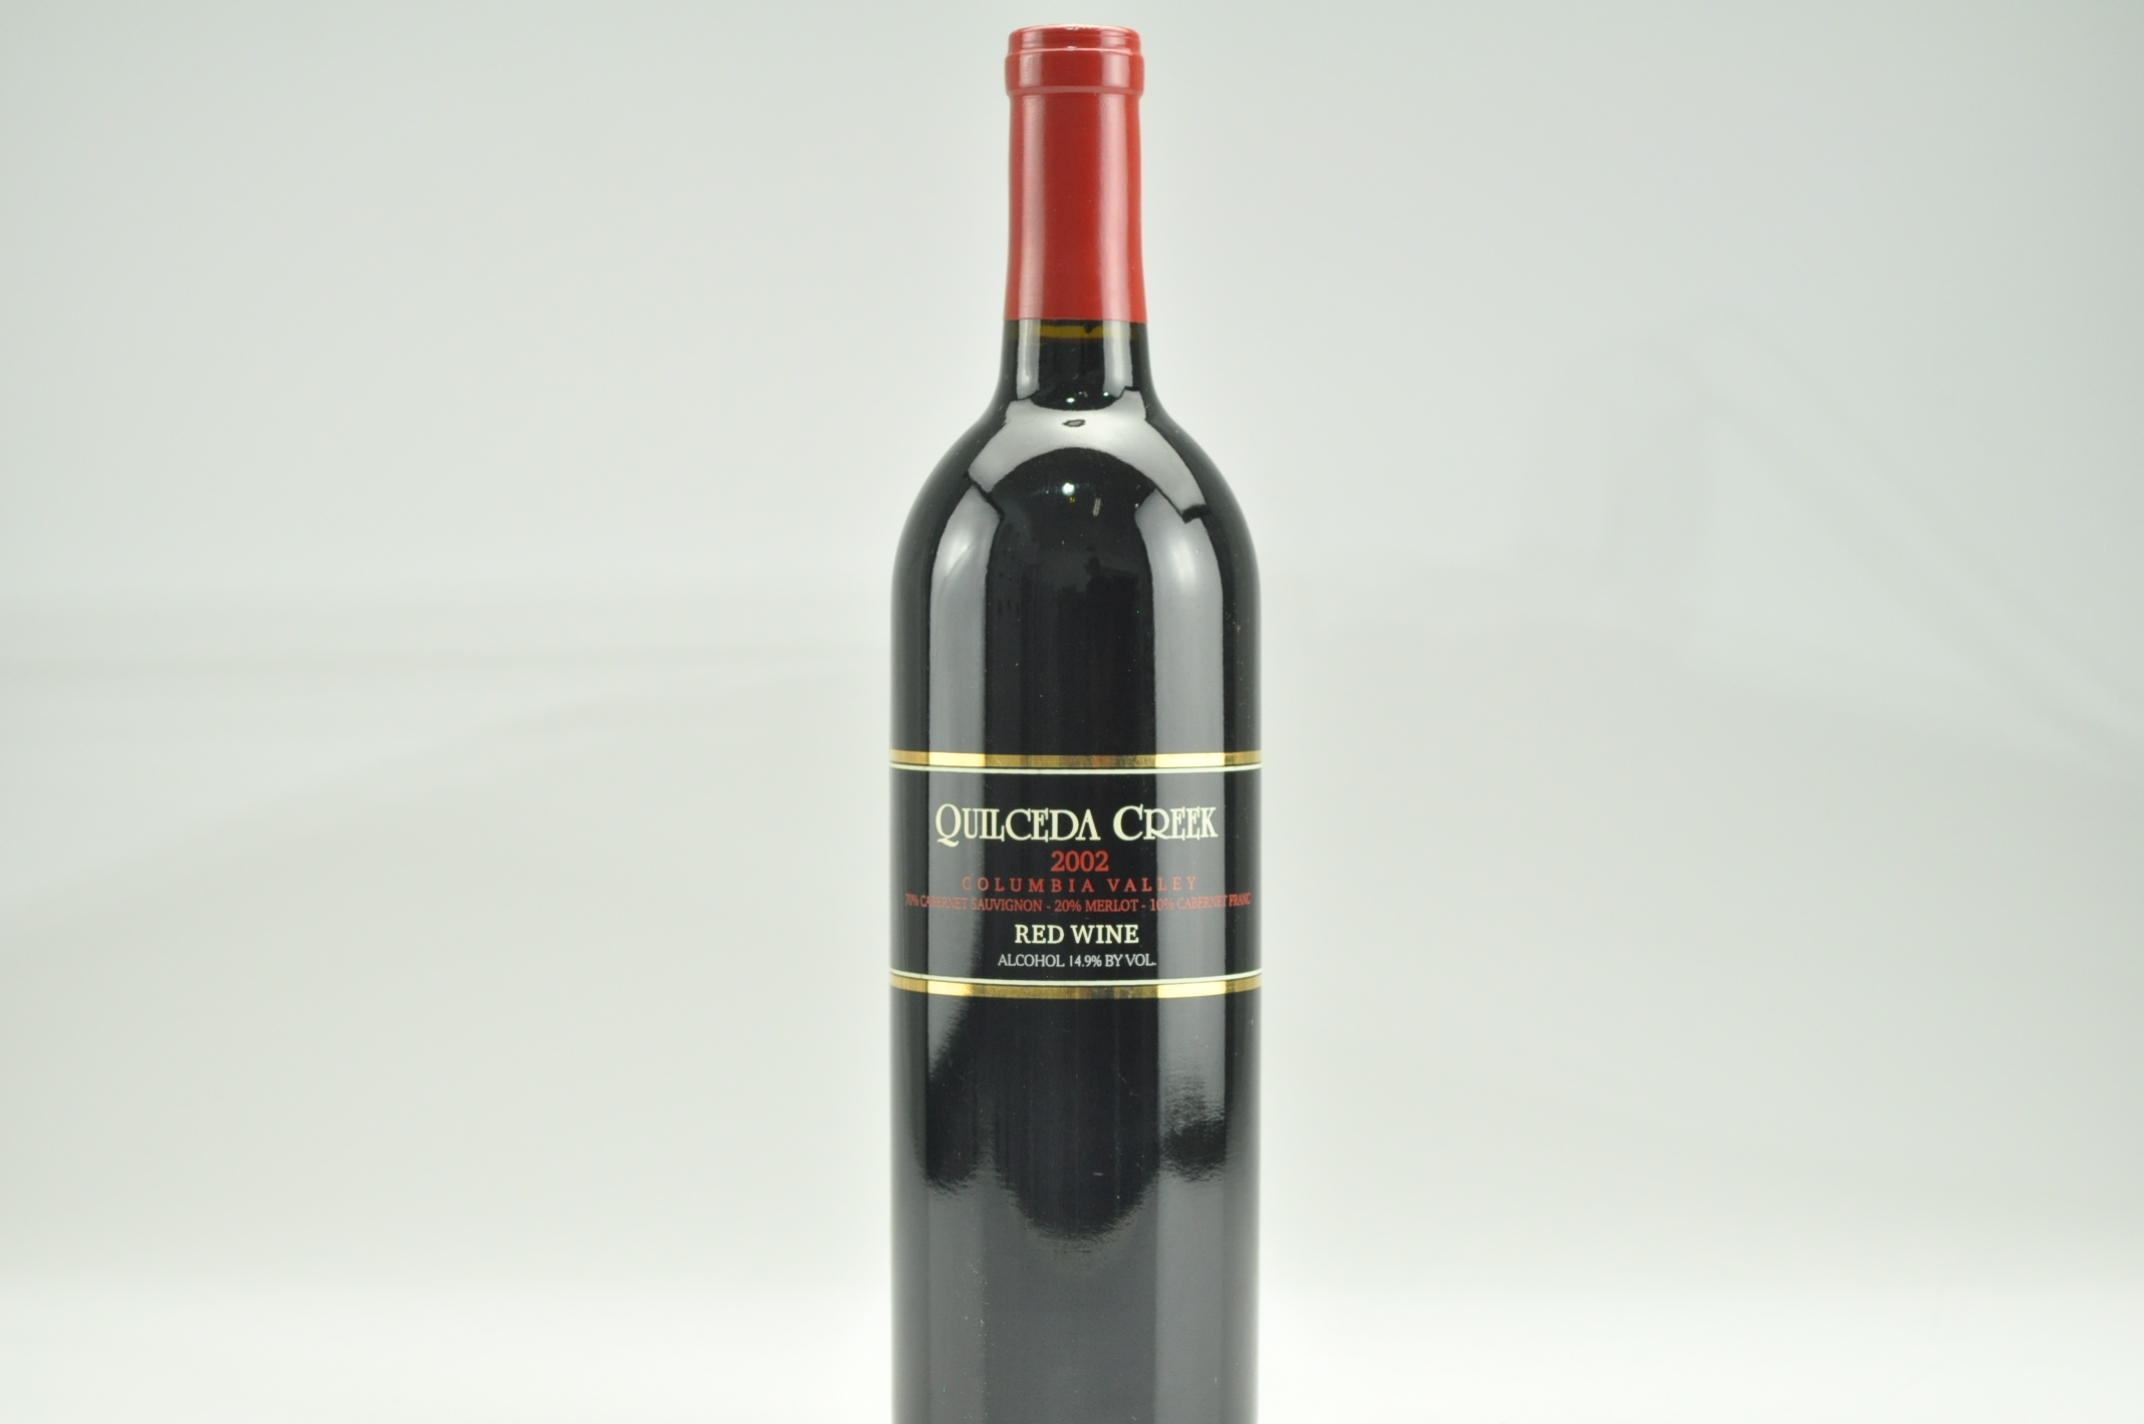 2009 Quilceda Creek Table Red Wine, Columbia Valley RP--92